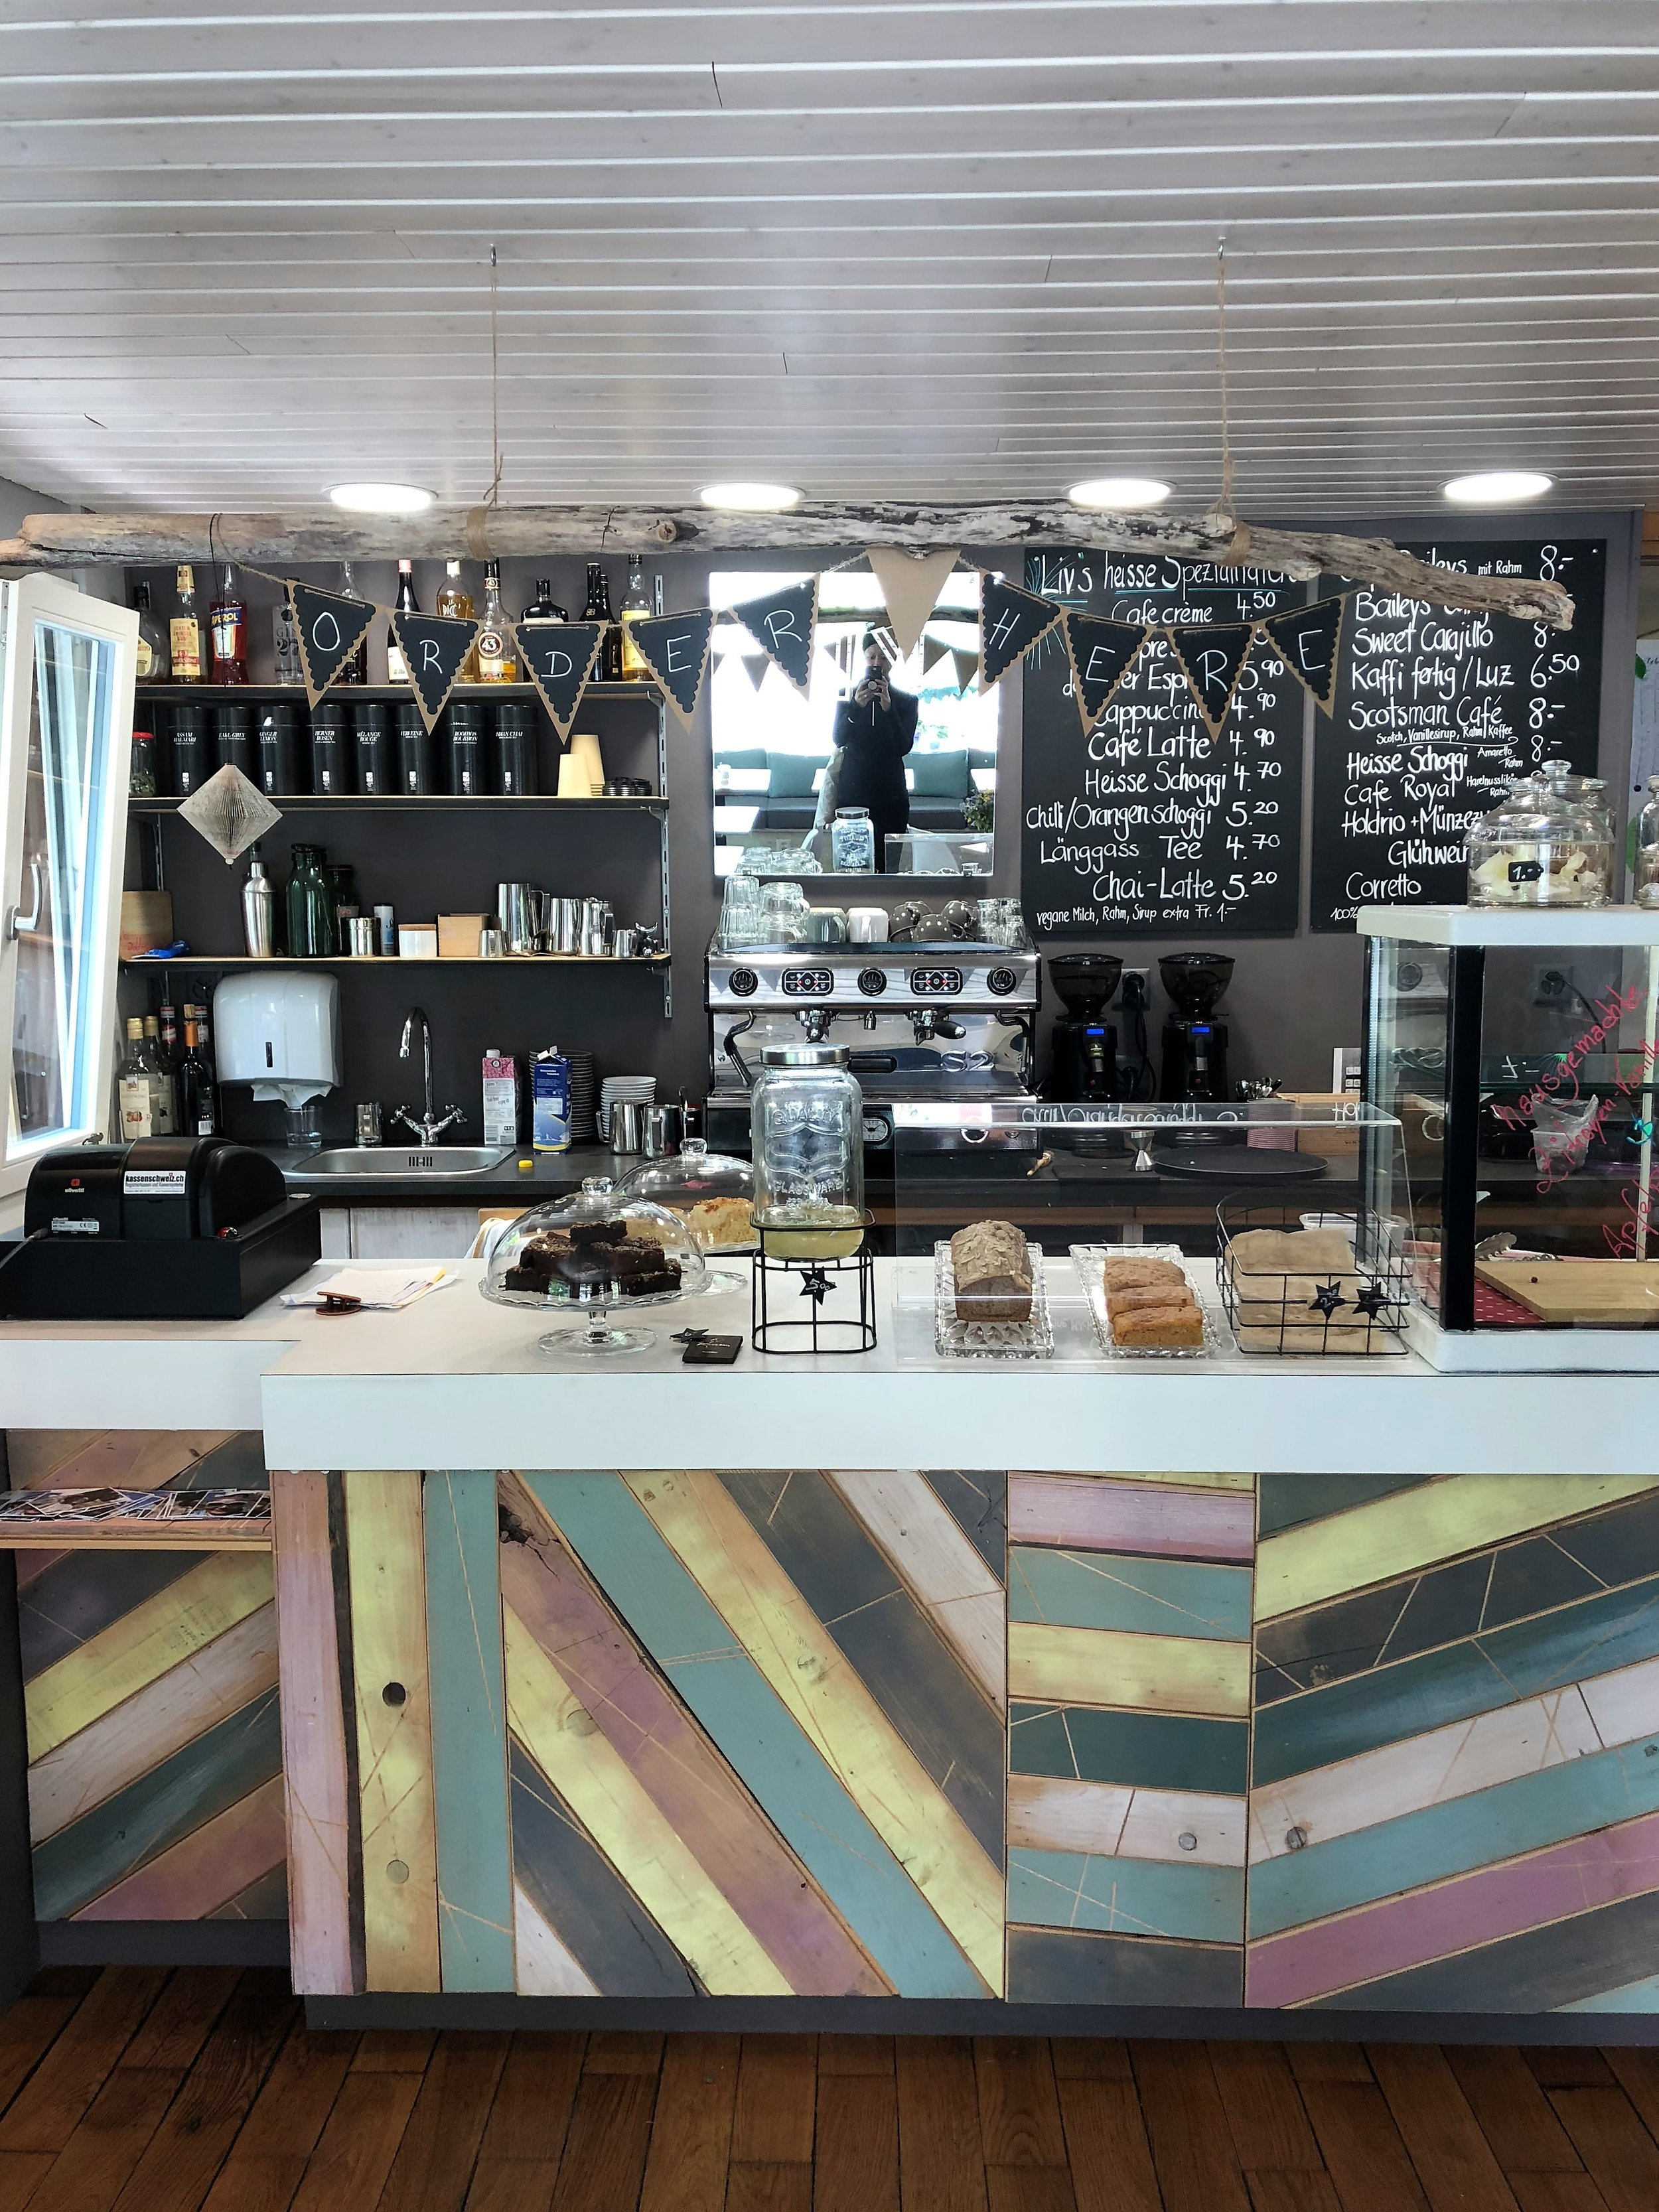 After returning from one of our hikes, we stopped by  Cafe Liv  for sandwiches to go and of course, a few of their pastries. It's the cutest little cafe and the items we purchased were delicious!